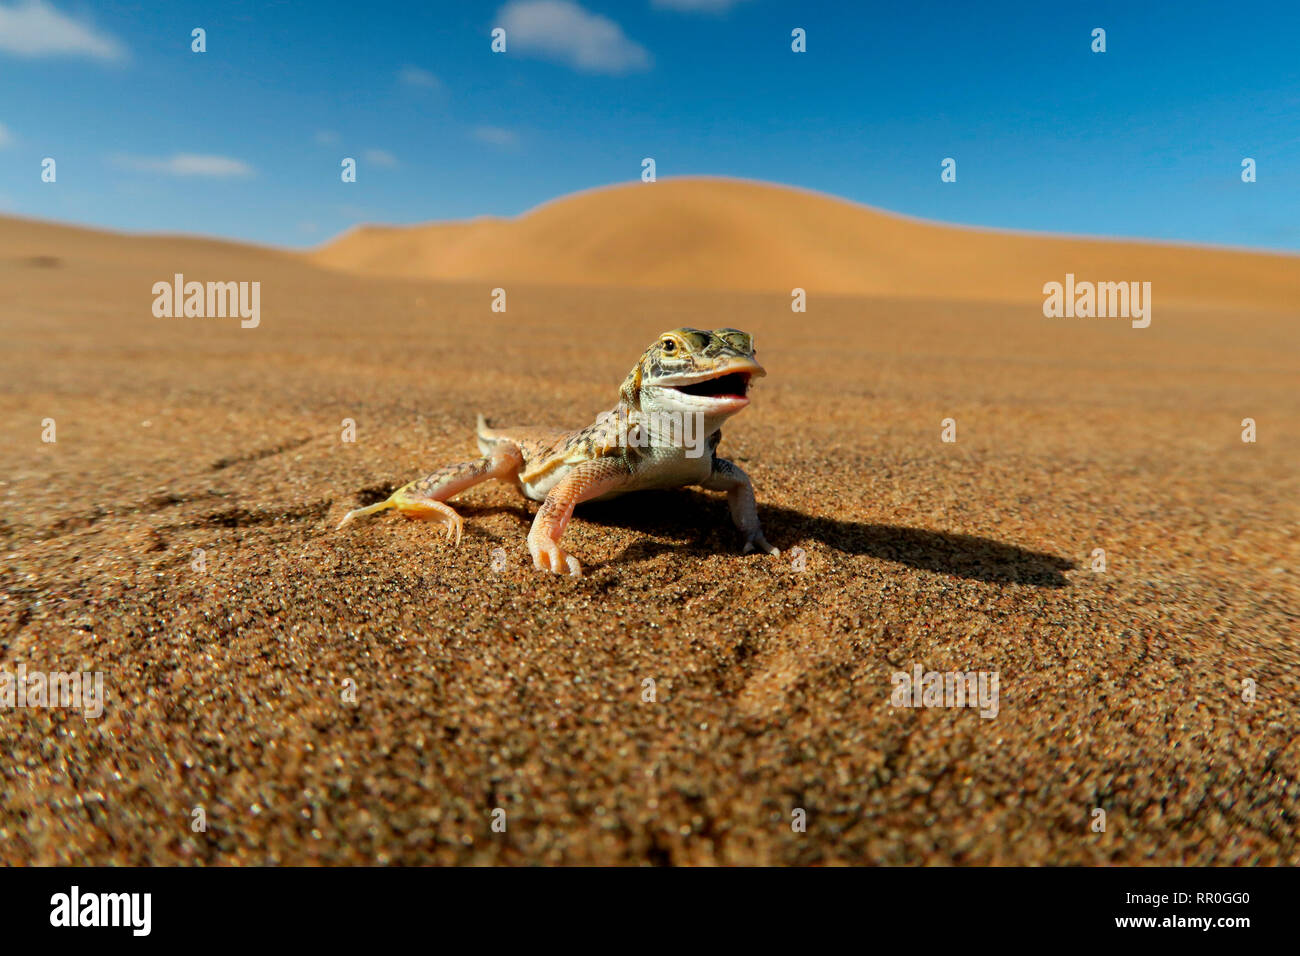 zoology, reptile (Reptilia), Desert lizard (Meroles anchietae), Namib Desert with Swakopmund, Namibia, Additional-Rights-Clearance-Info-Not-Available - Stock Image